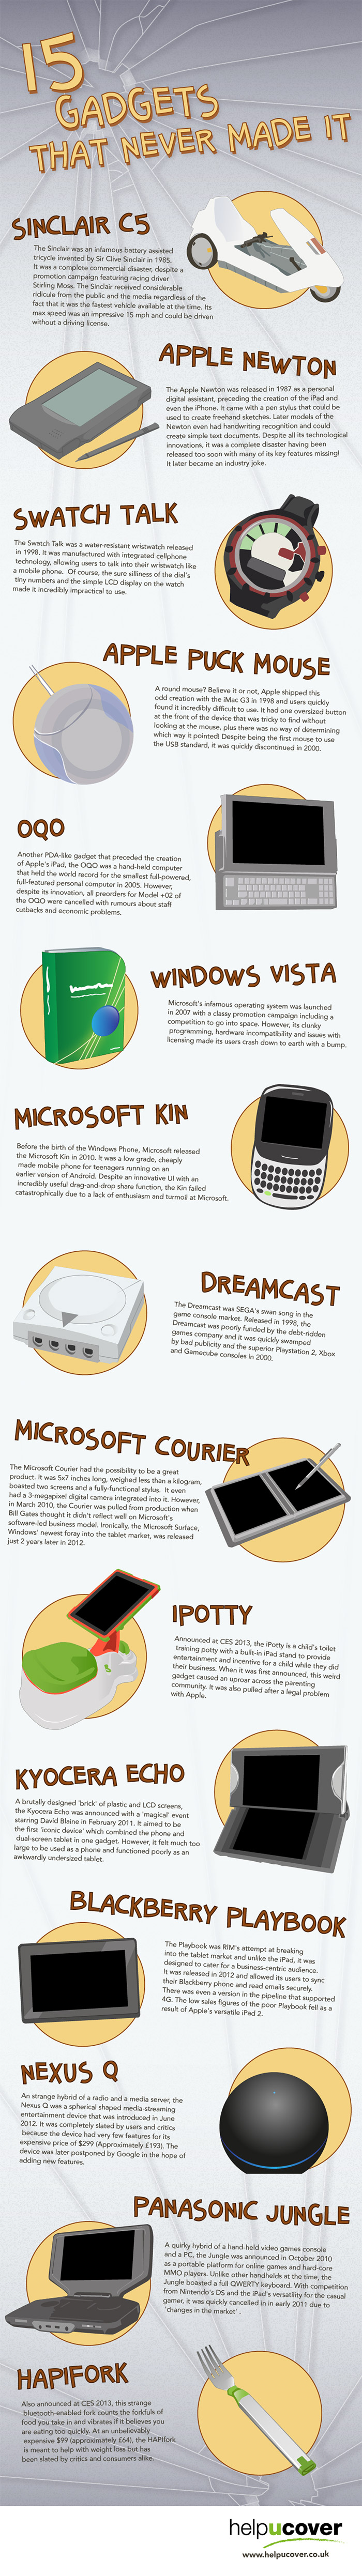 15 gadgets that never made it